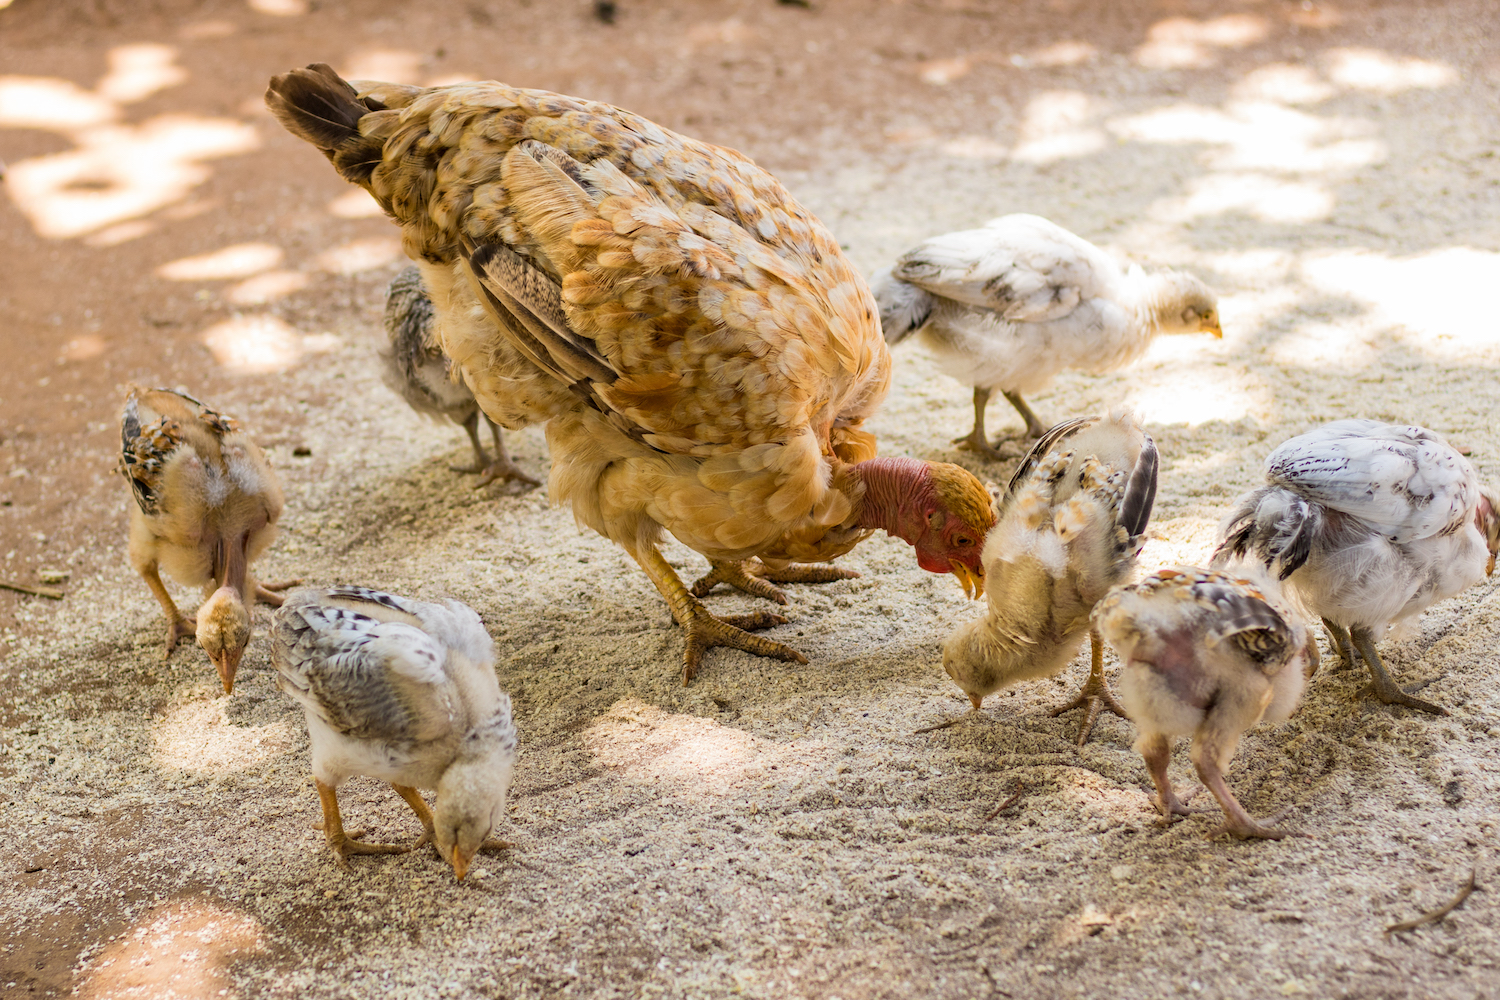 Poultry  – We help community members better understand how to care for their chickens from incubation to adulthood. Healthy chickens mean healthier families and better economic prospects.